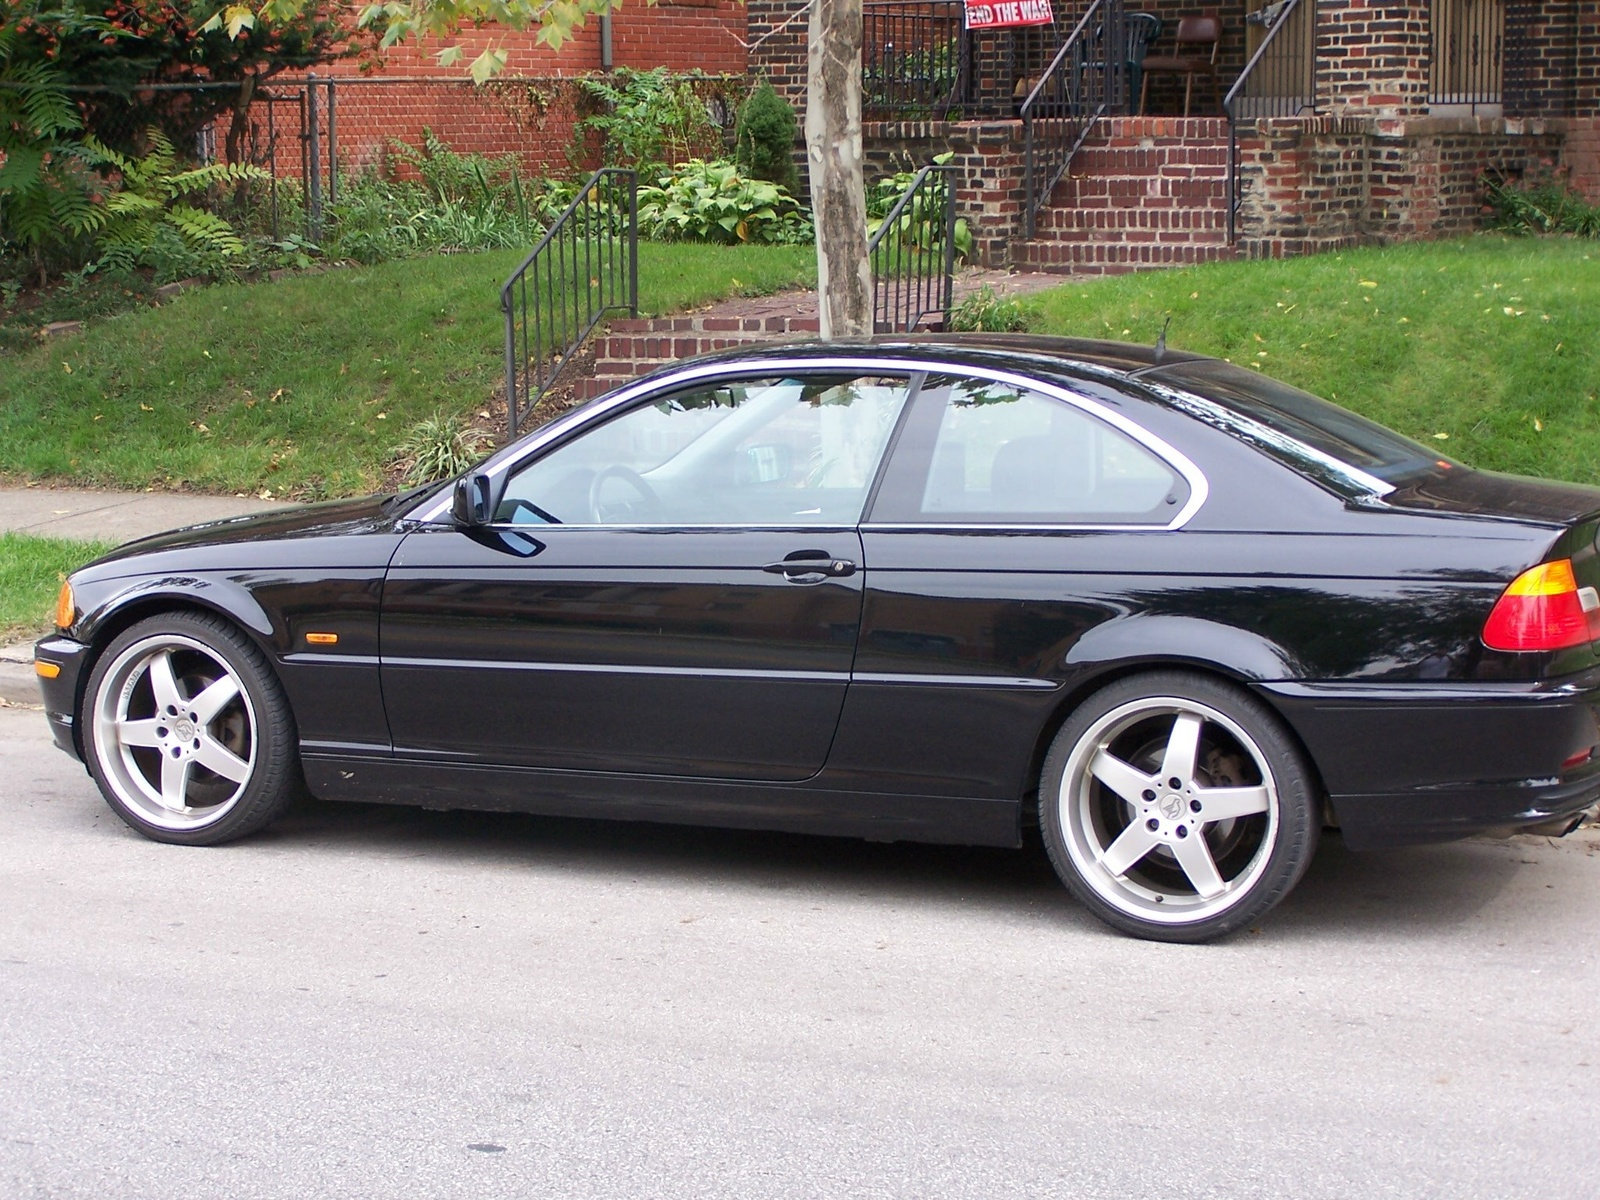 BMW 3 series 325i 2000 photo - 11